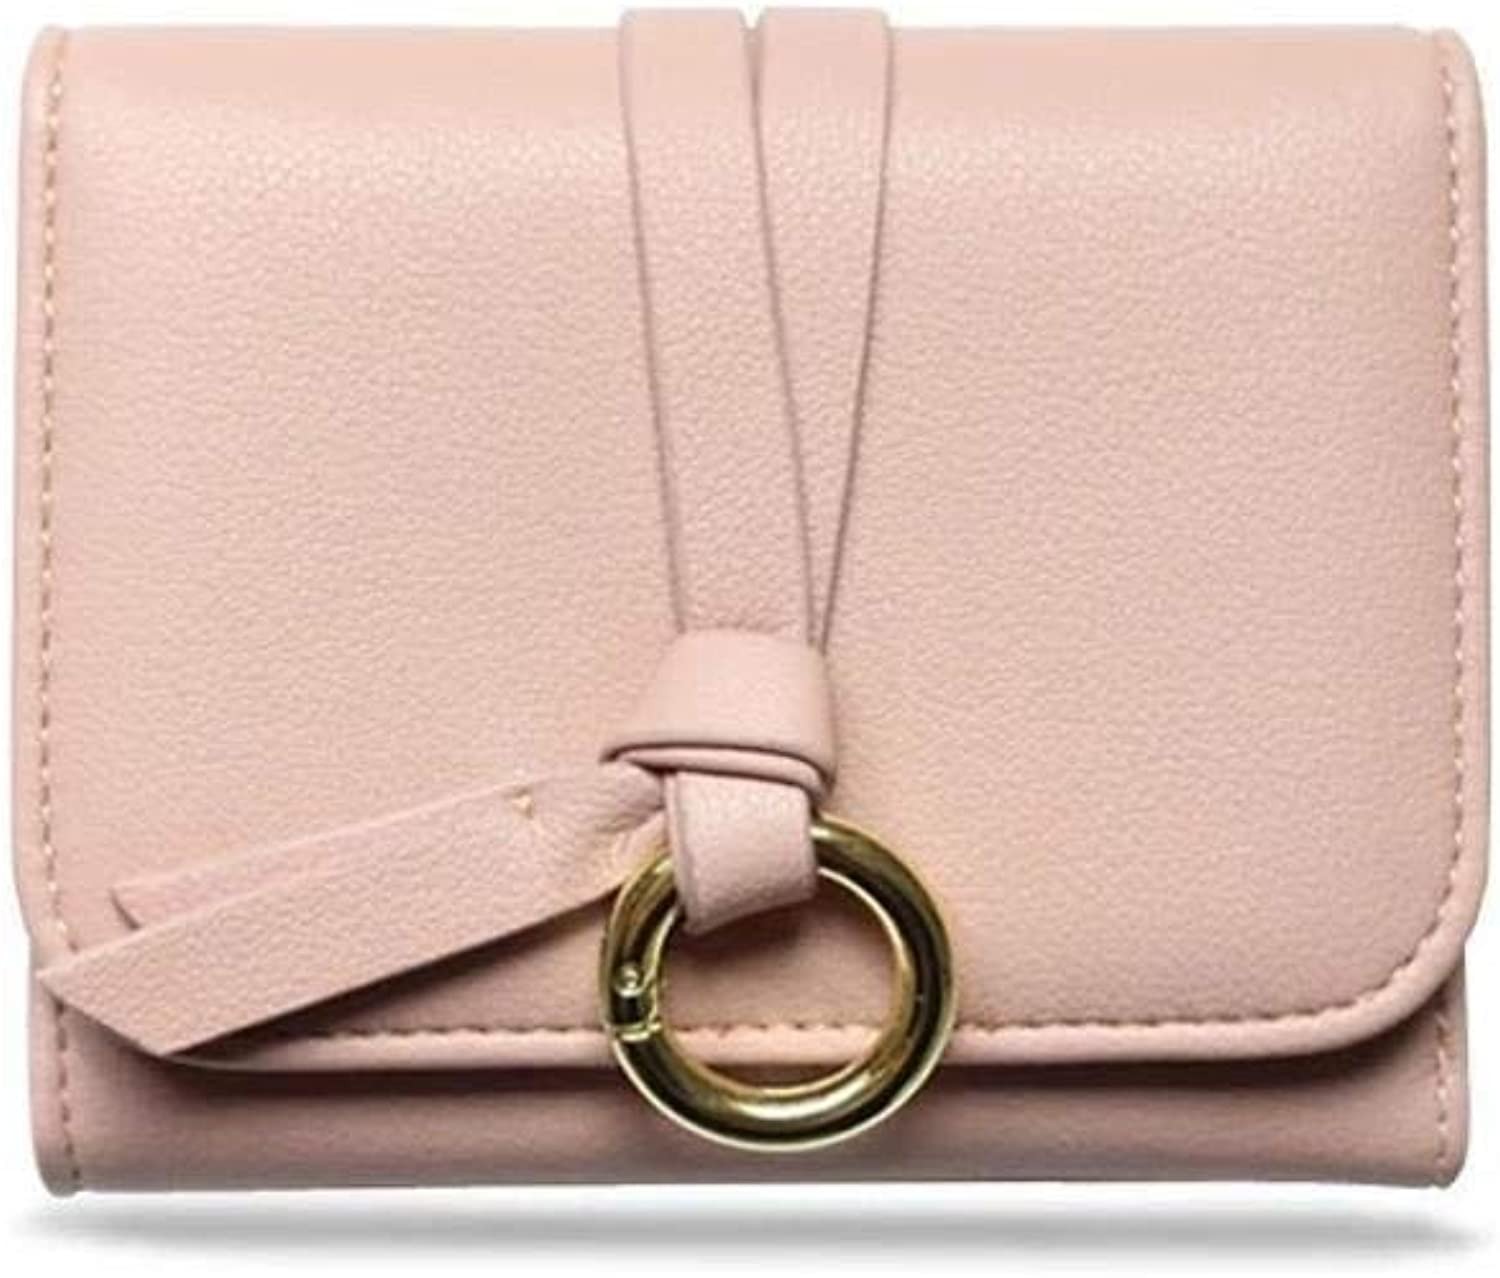 Girls Purse Women's Wallet Ladies Wallet Students Three Folding Simple Hundred Little Wallet (color   B)